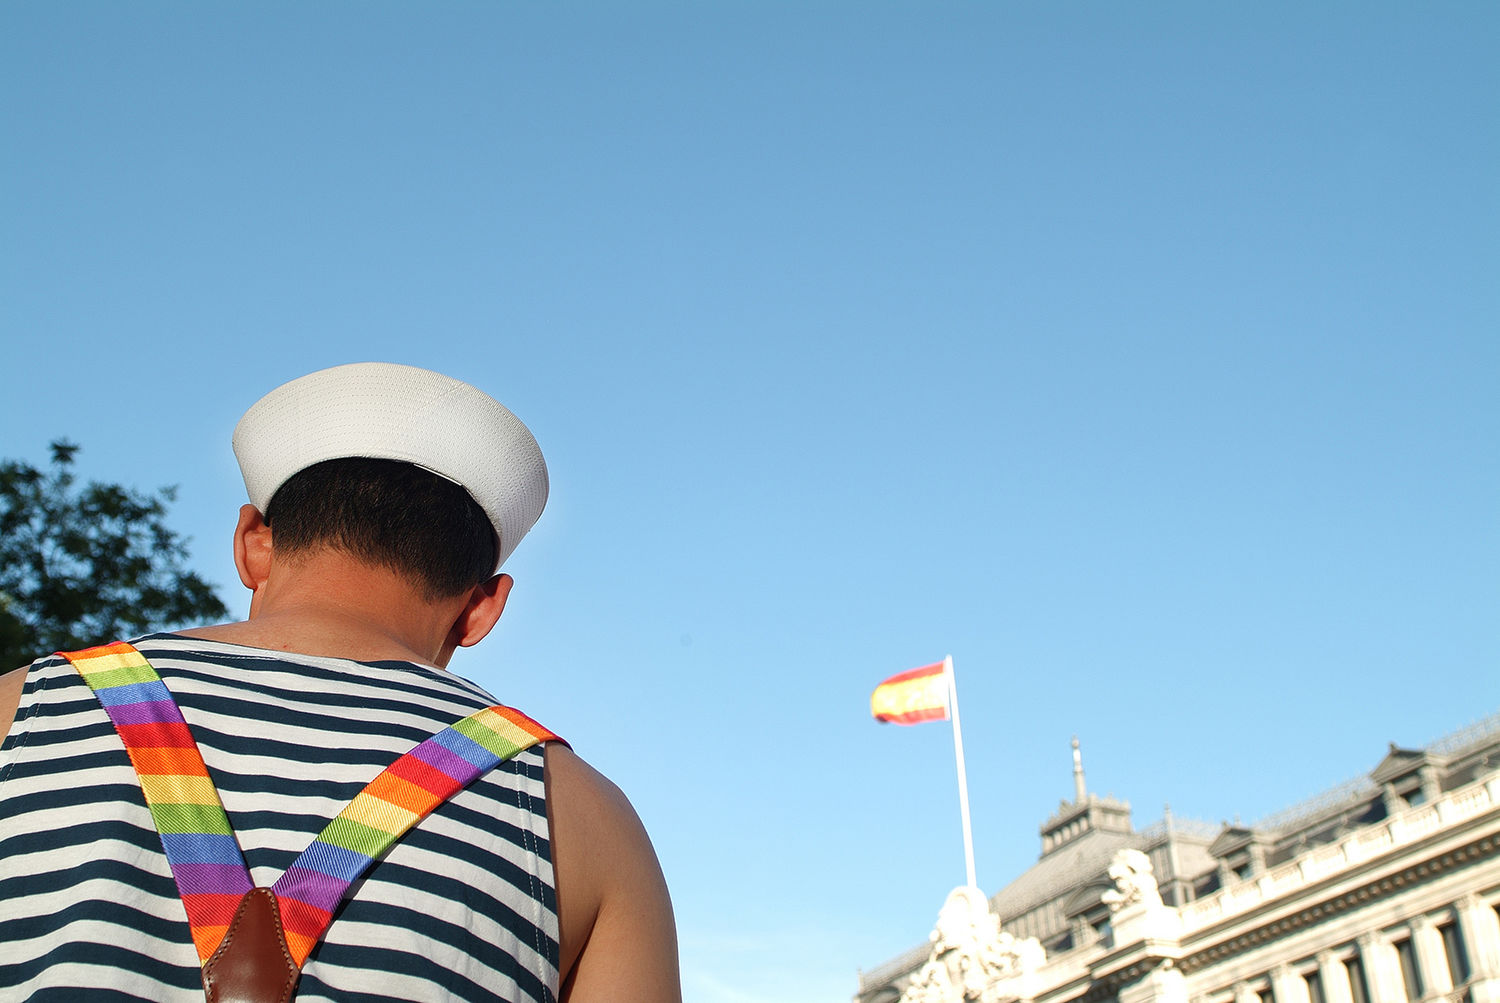 Madrid Gay Pride Photo Gallery